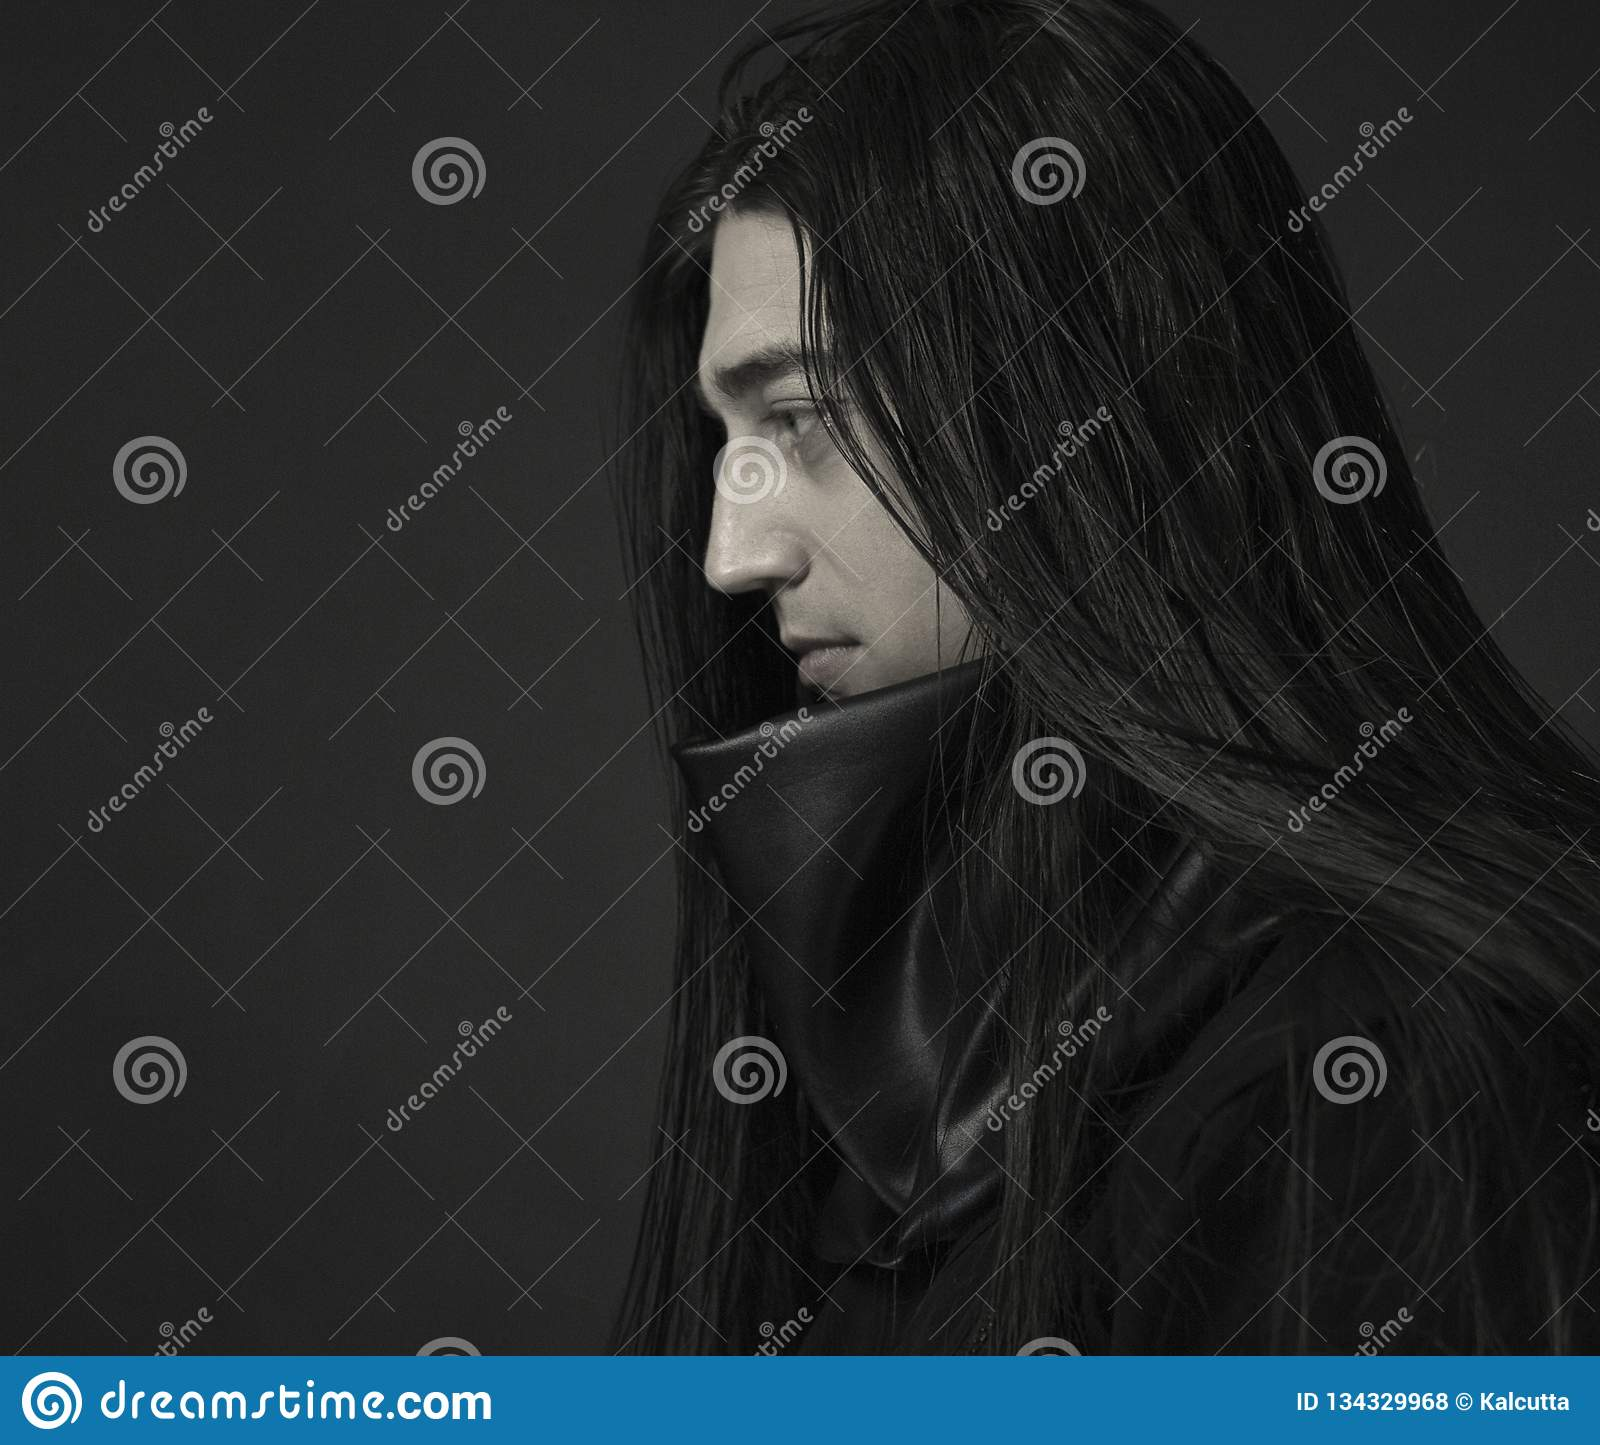 Stylish handsome Young man. Caucasian man`s portrait. man in black clothes with dark long hair